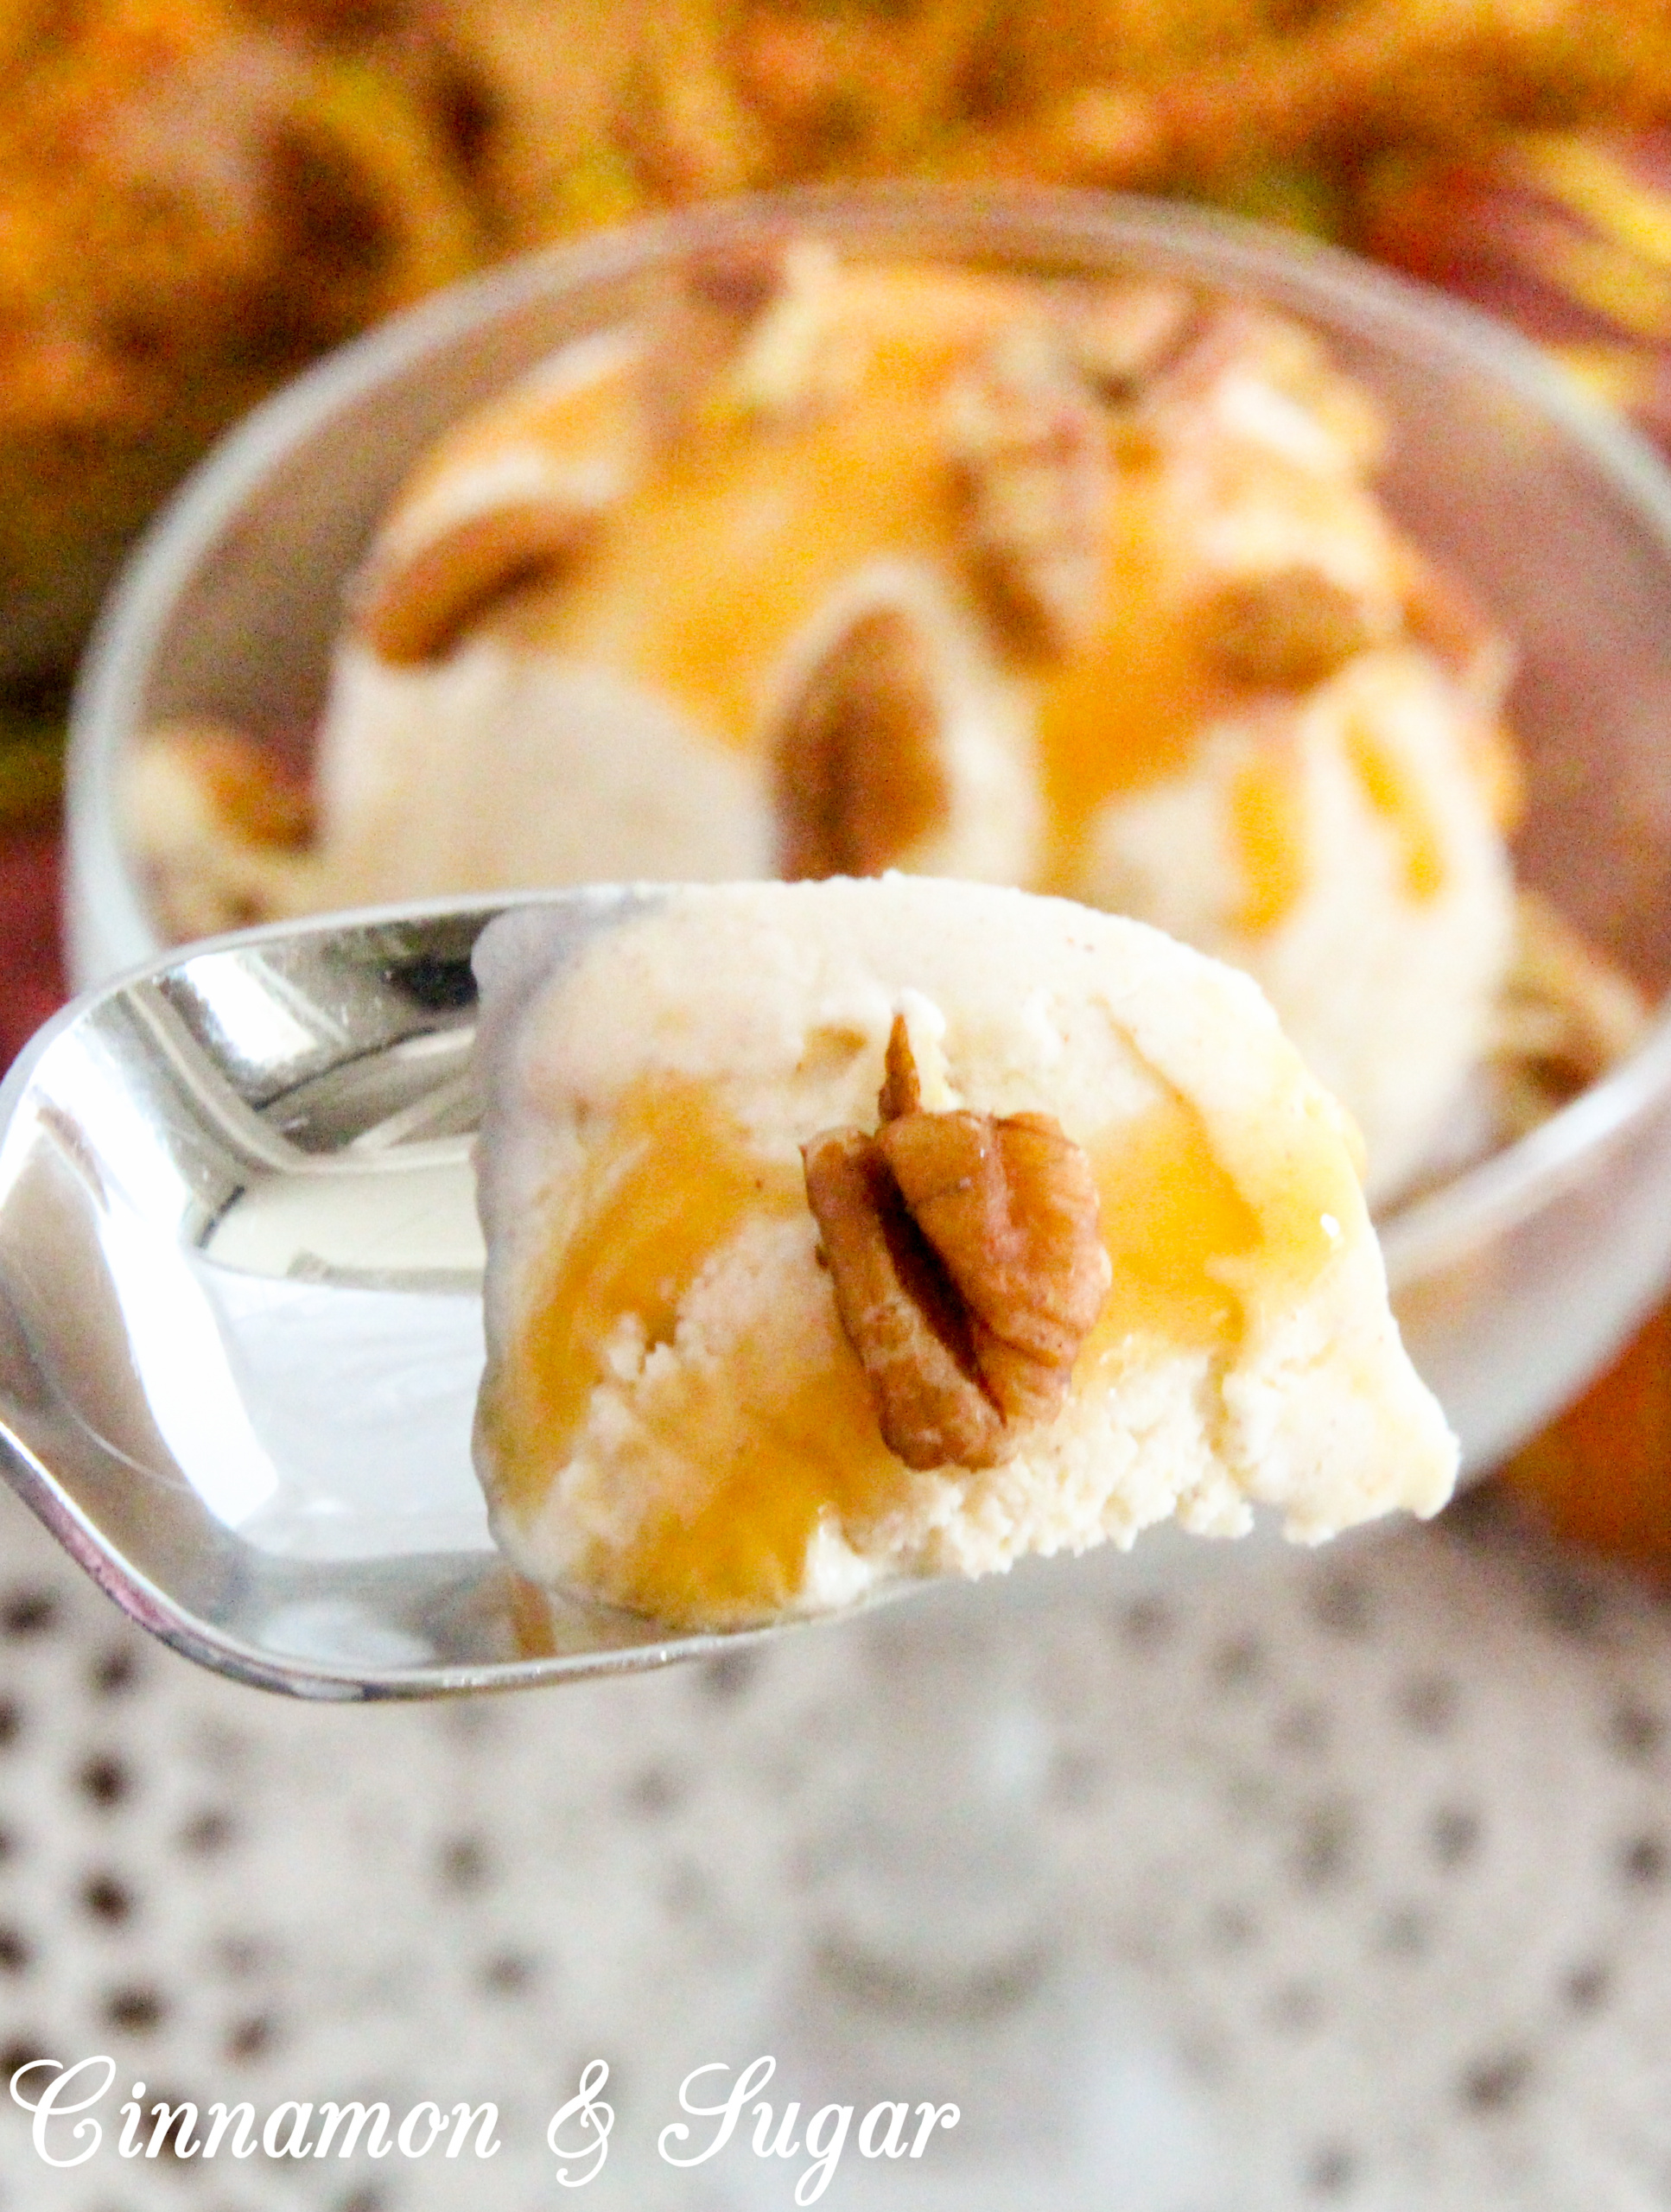 Chagrin Falls Pumpkin Spice Ice Cream is luscious and creamy! This frozen concoction has the perfect balance of pumpkin and spices so that one doesn't overwhelm the other. Recipe shared with permission granted by Abby Collette, author of A DEADLY INSIDE SCOOP.